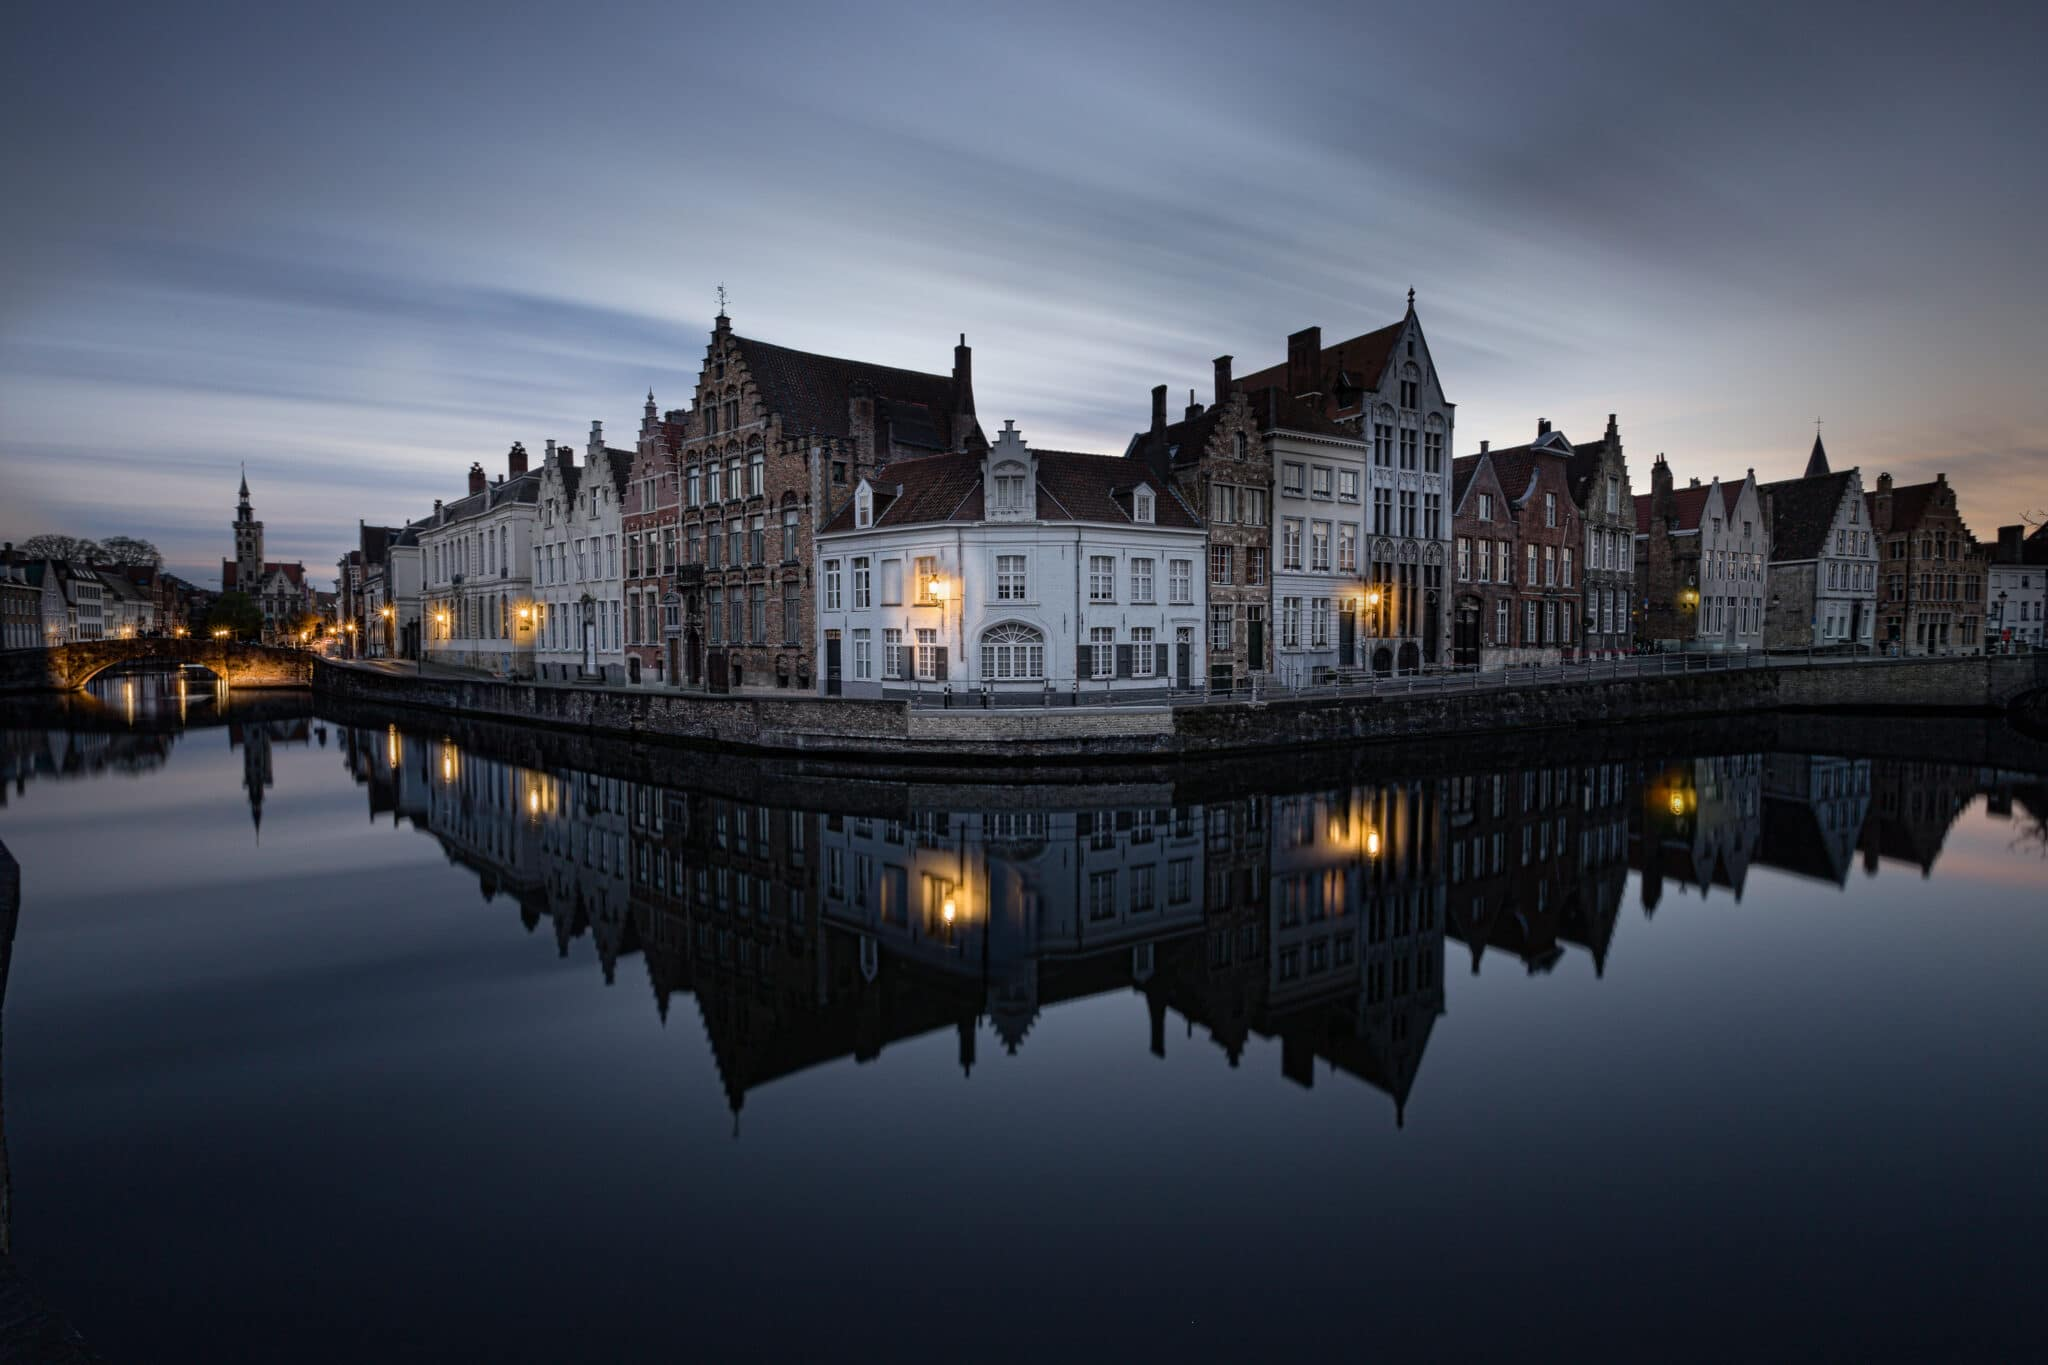 Cityscape - Bruges by Night - Spiegelrei - Fotografie Krist